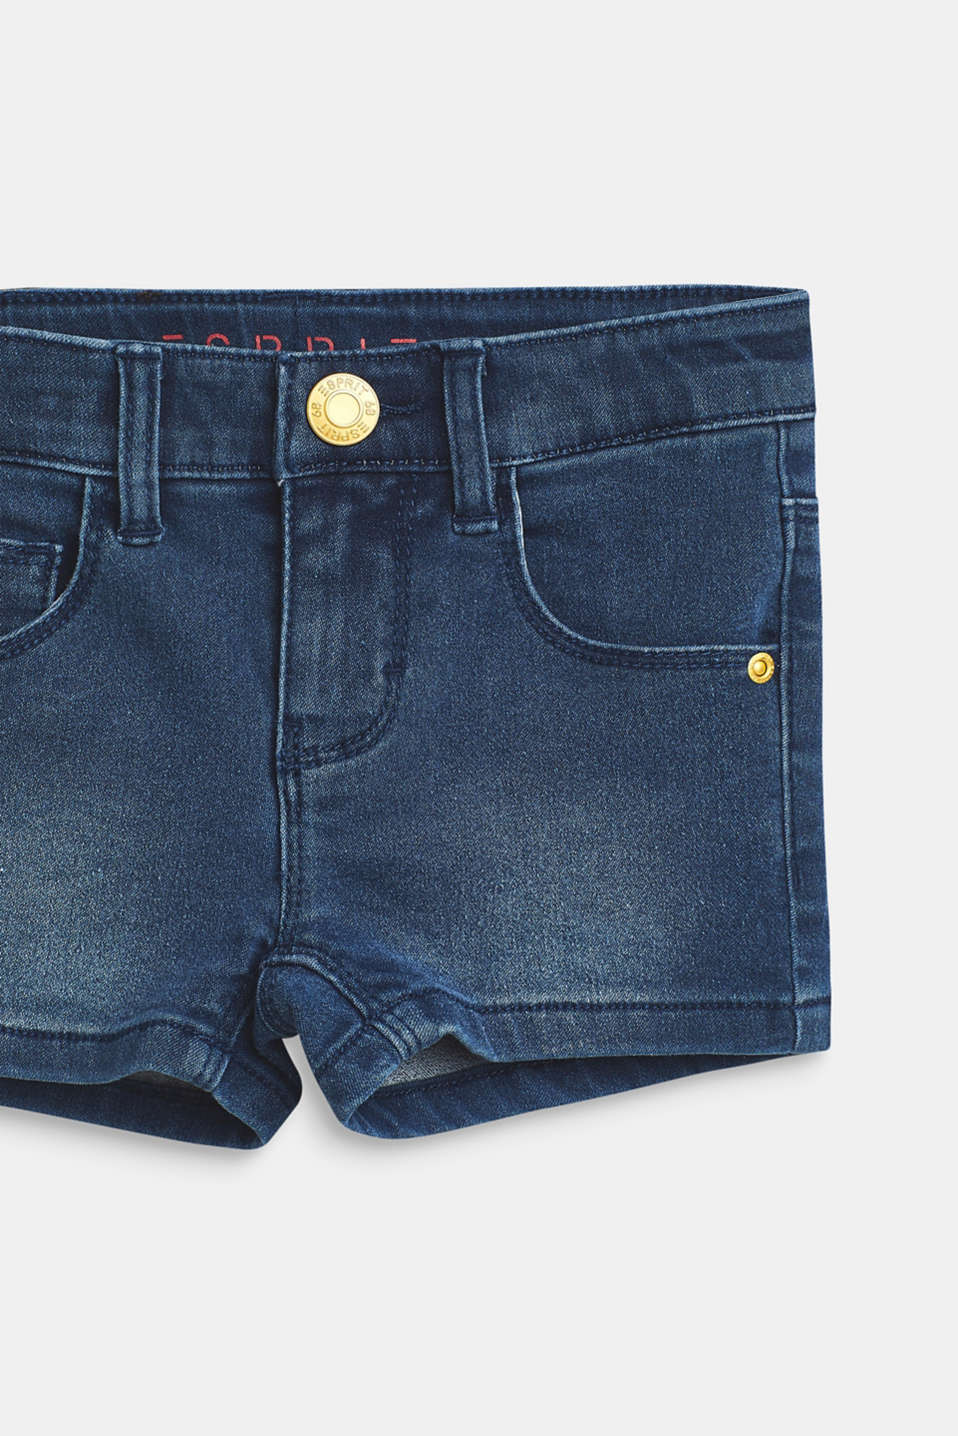 Stretch denim shorts with an adjustable waistband, MEDIUM WASH DE, detail image number 2